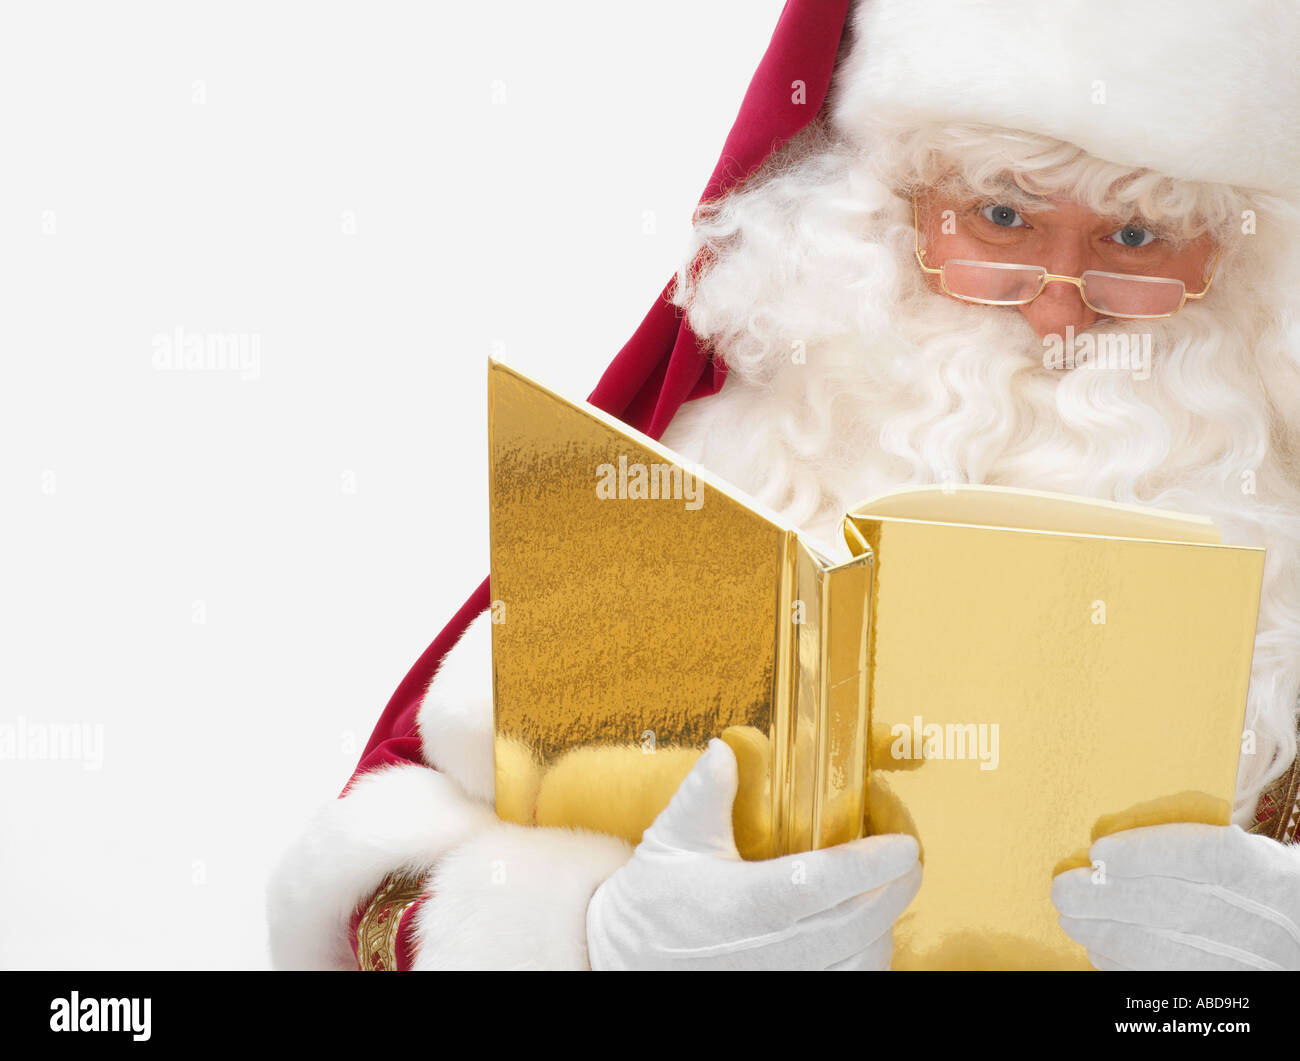 Santa claus with a book - Stock Image